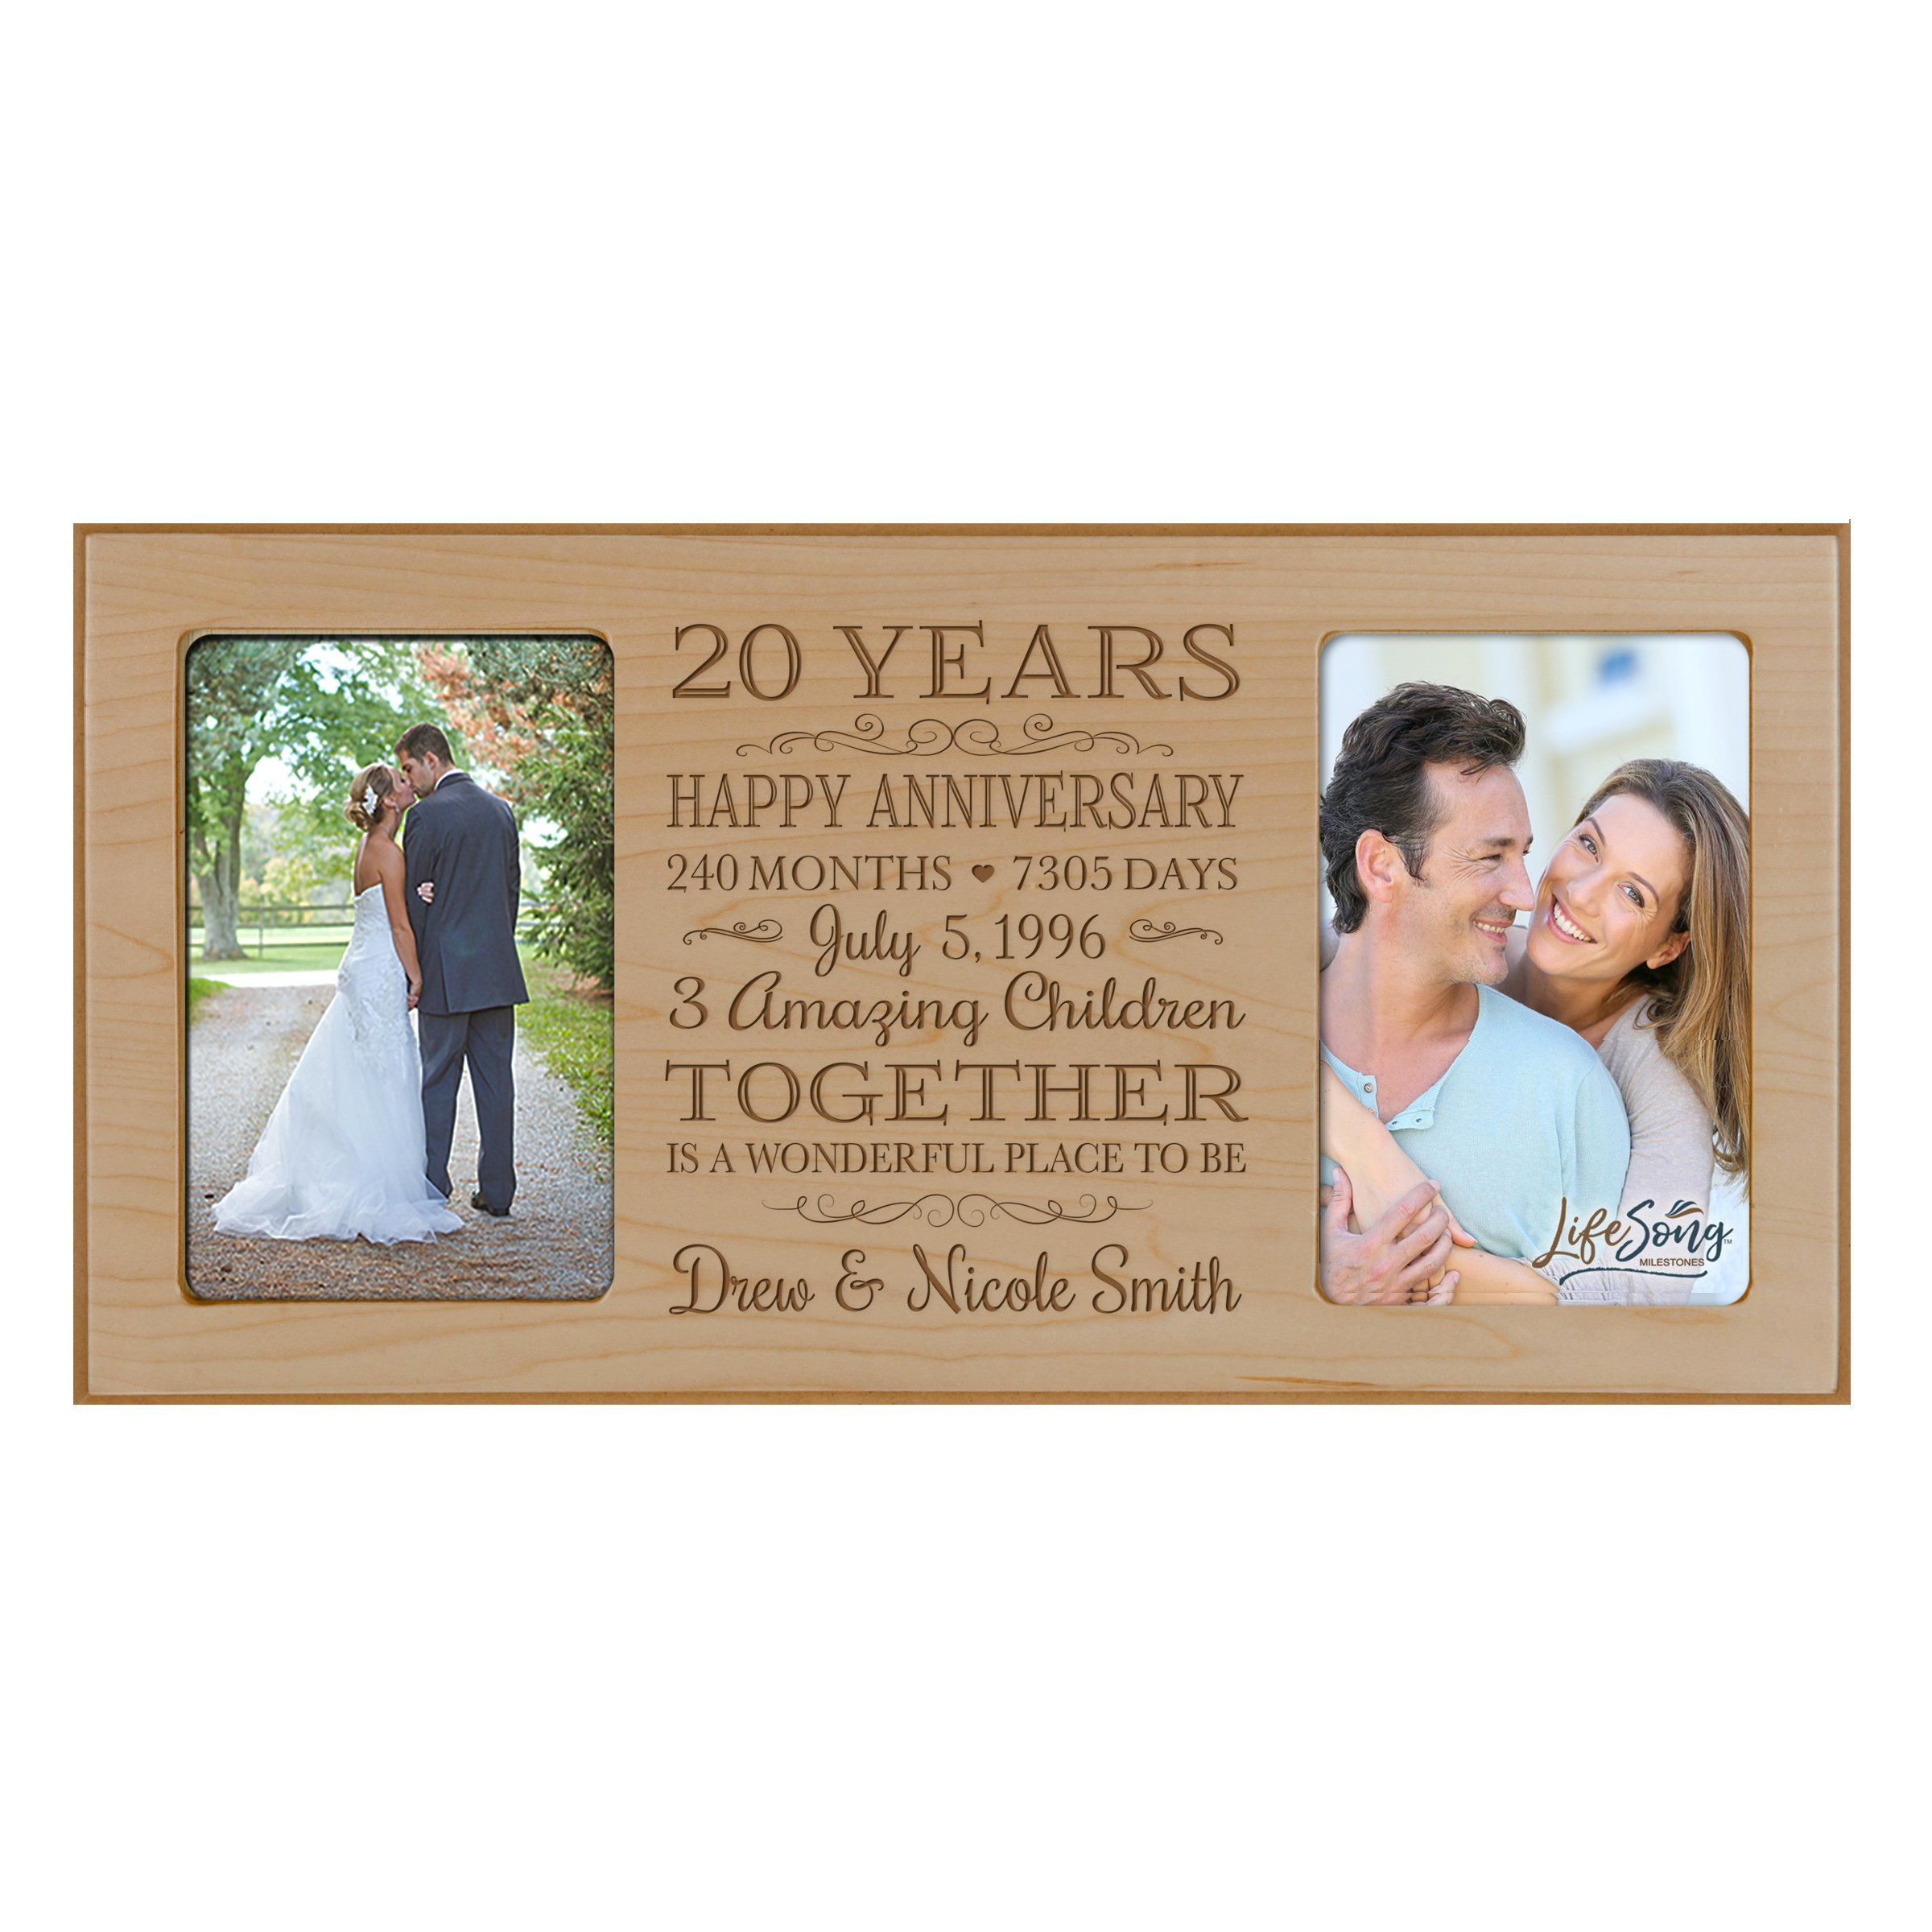 LifeSong Milestones Personalized Twenty Year her him Couple Custom Engraved Wedding Celebration for Husband Wife Girlfriend Boyfriend Photo Frame Holds Two 4x6 Photos (Maple) by LifeSong Milestones (Image #1)